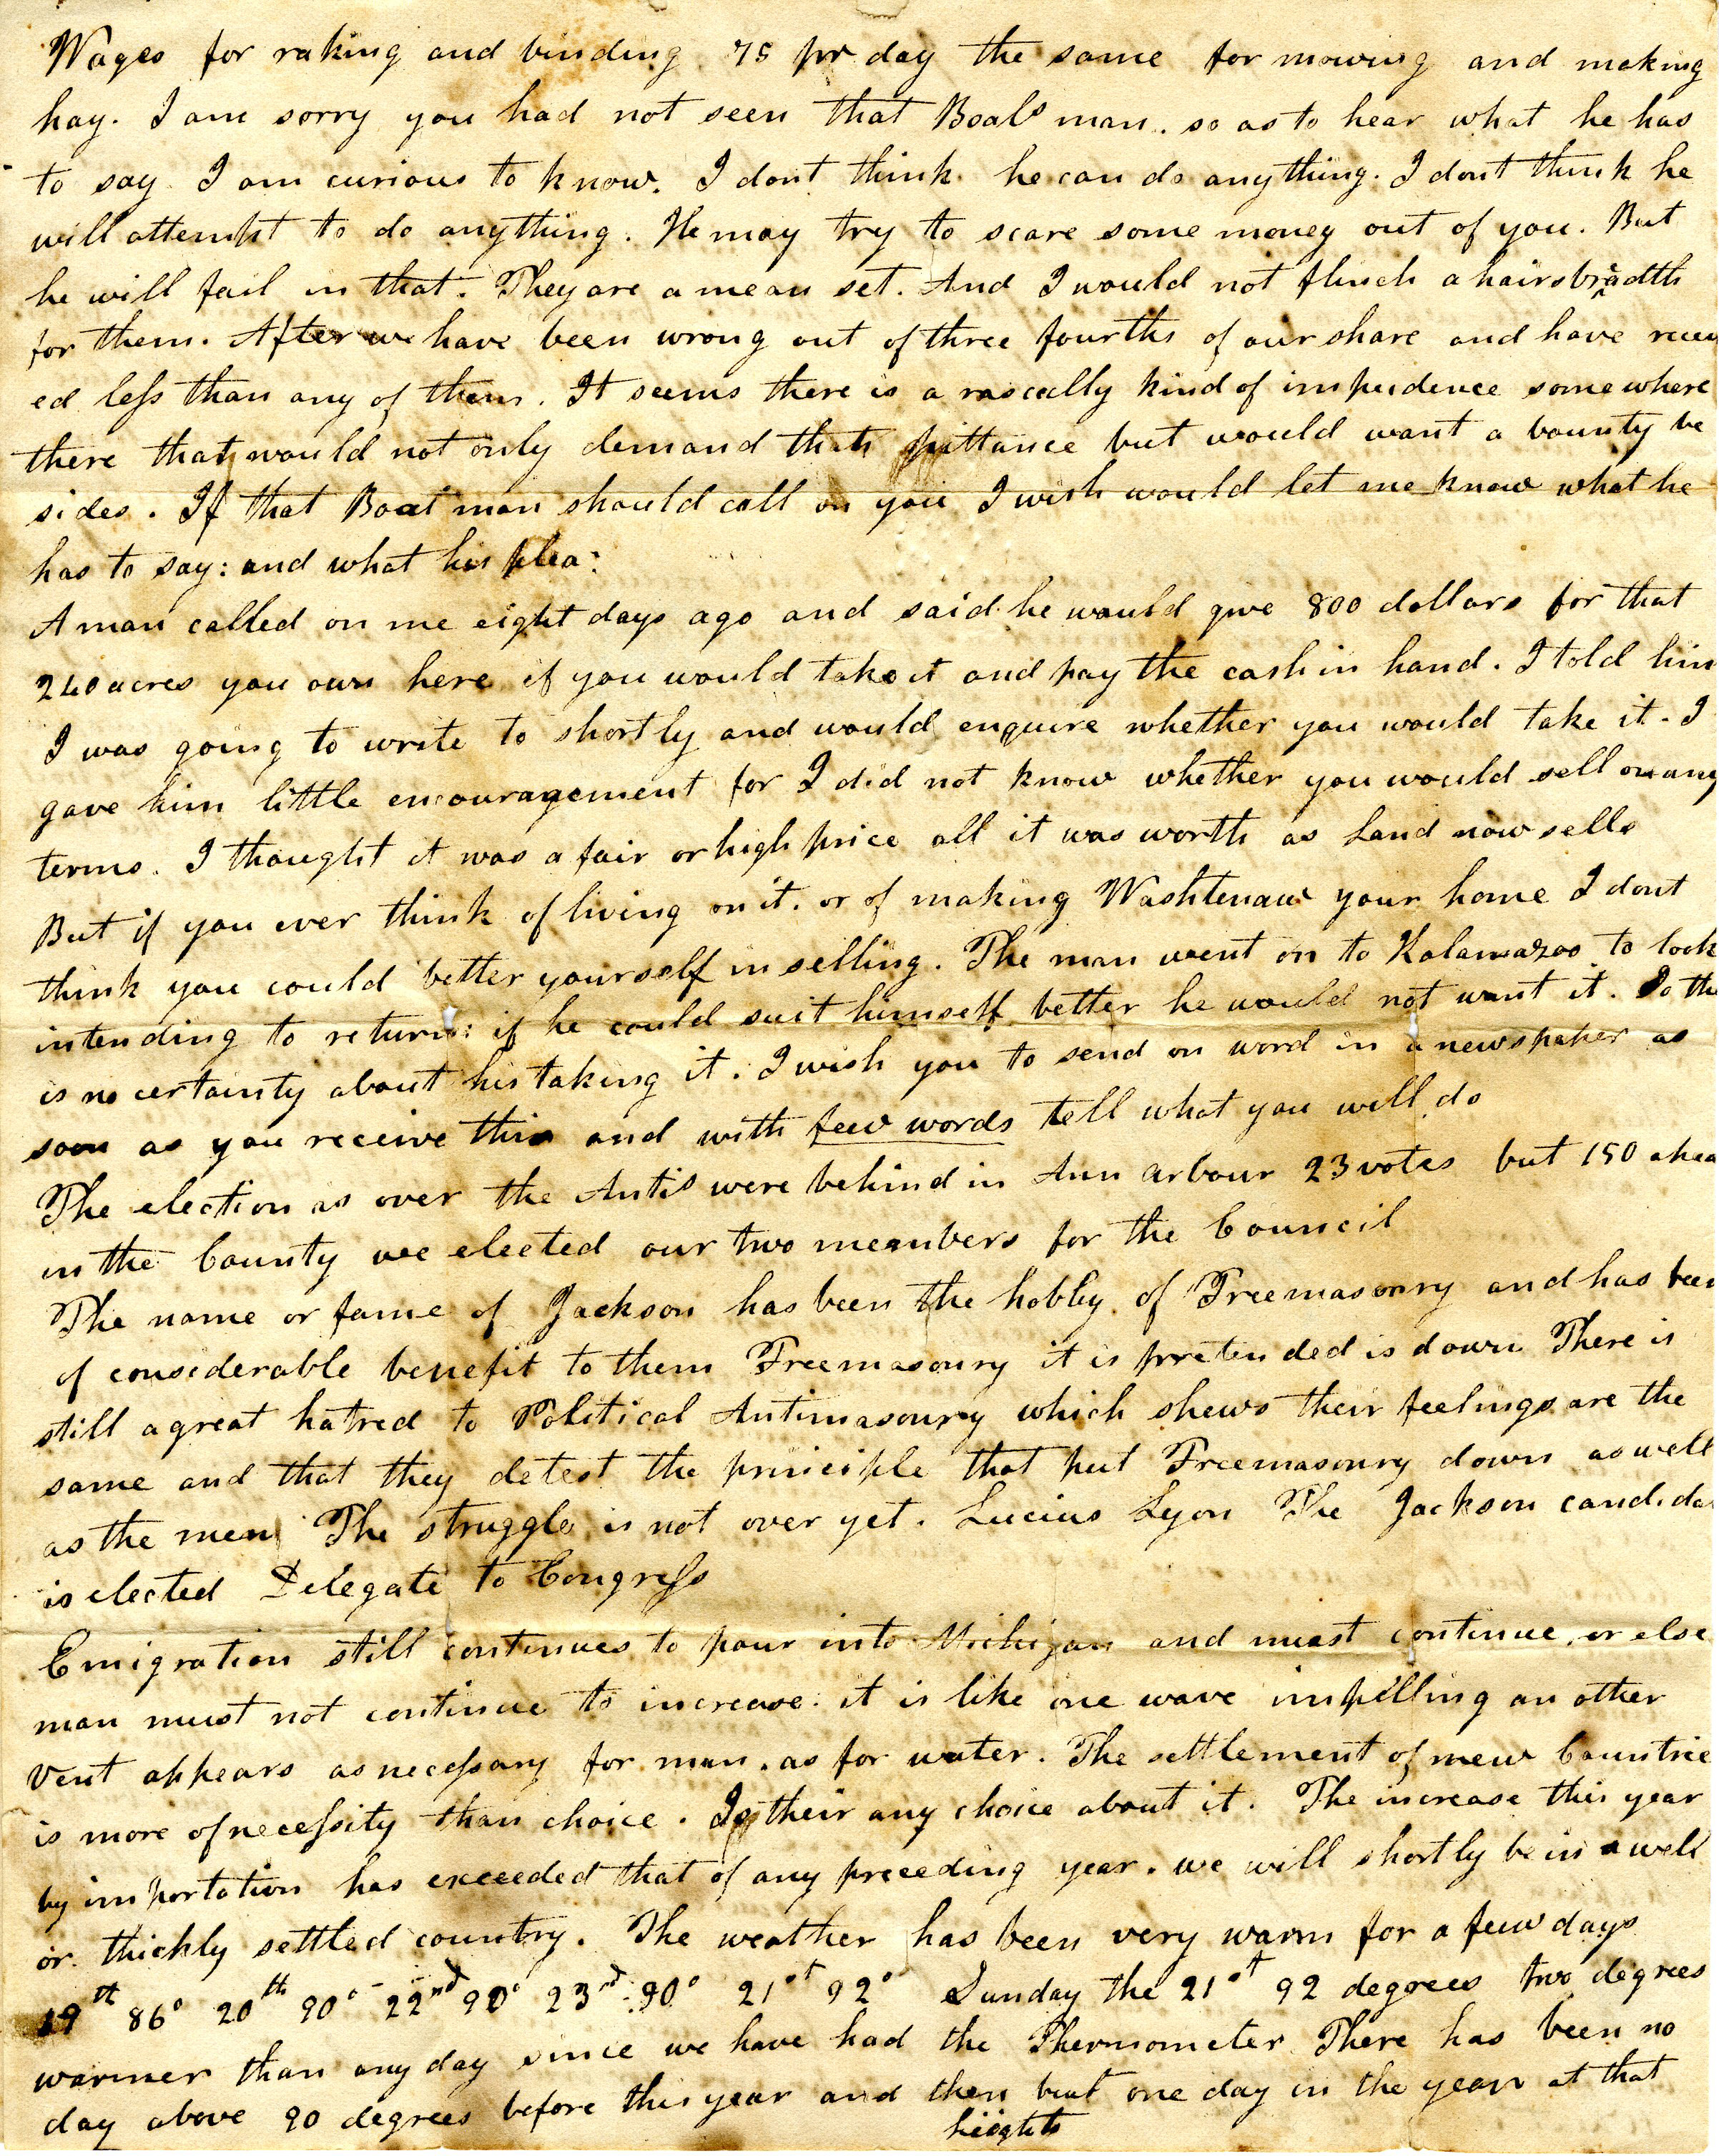 Letter From John Geddes to William Geddes, July 23, 1833 image